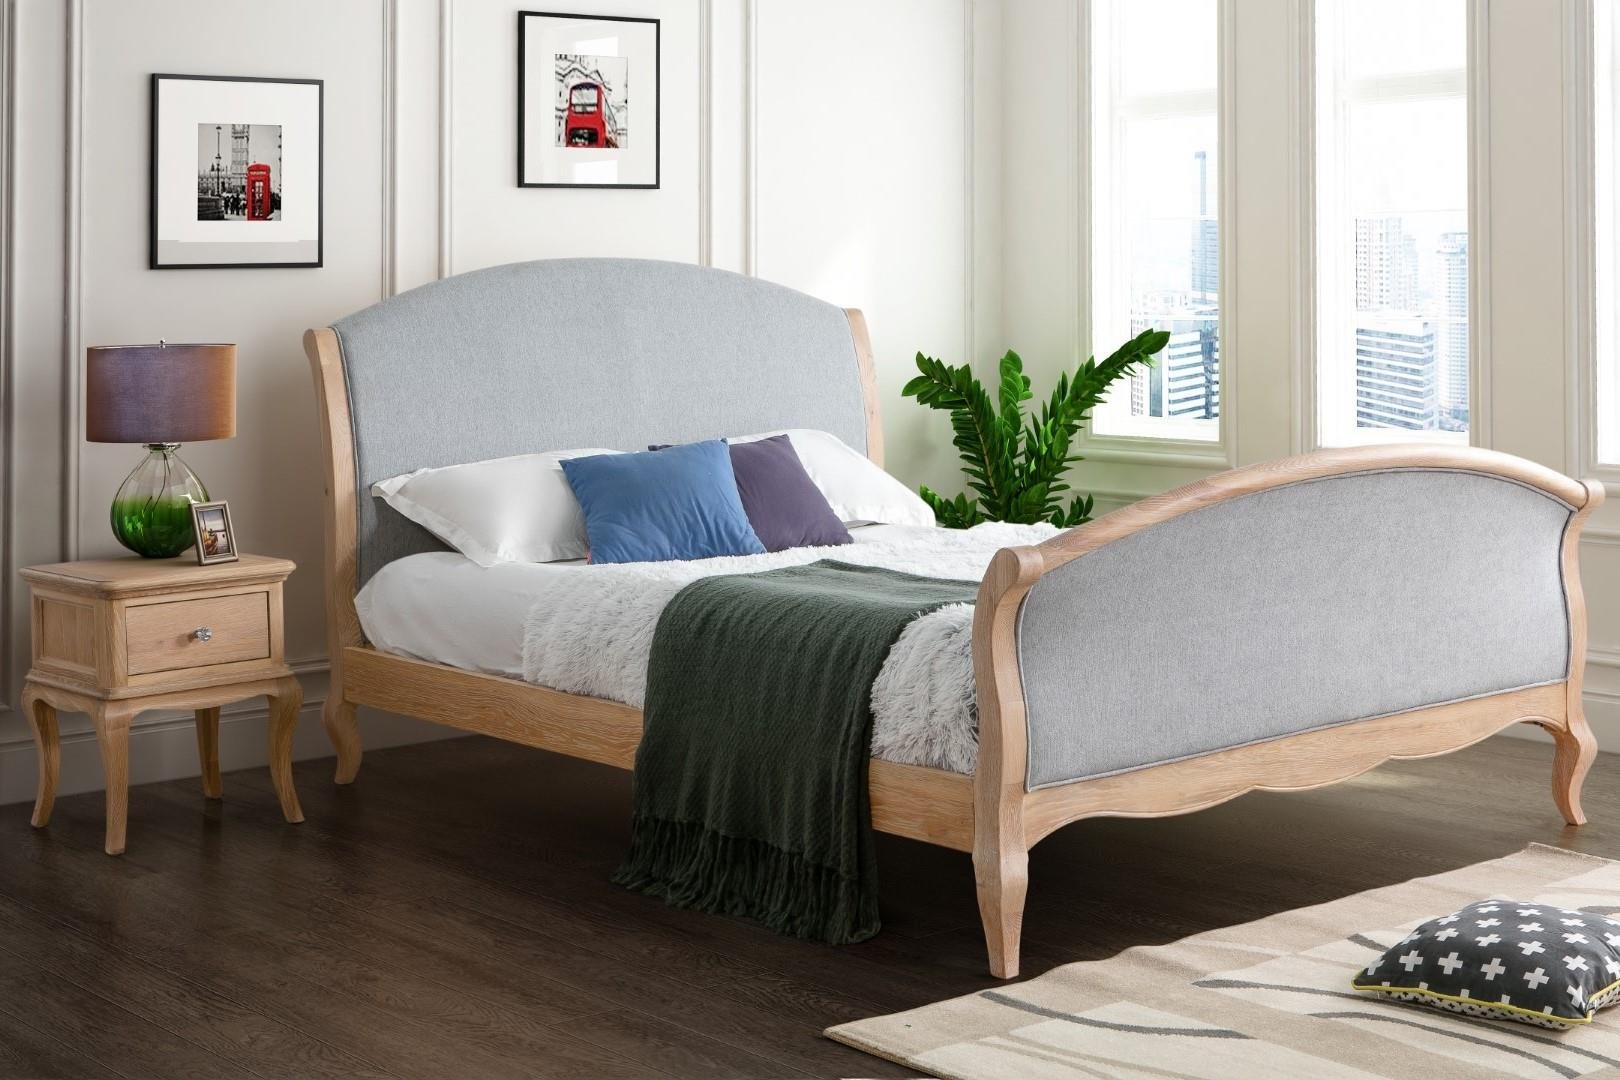 Birlea Savoy Solid Oak Wood Bed Frame Grey Fabric 5FT Kingsize 150cm Bedstead